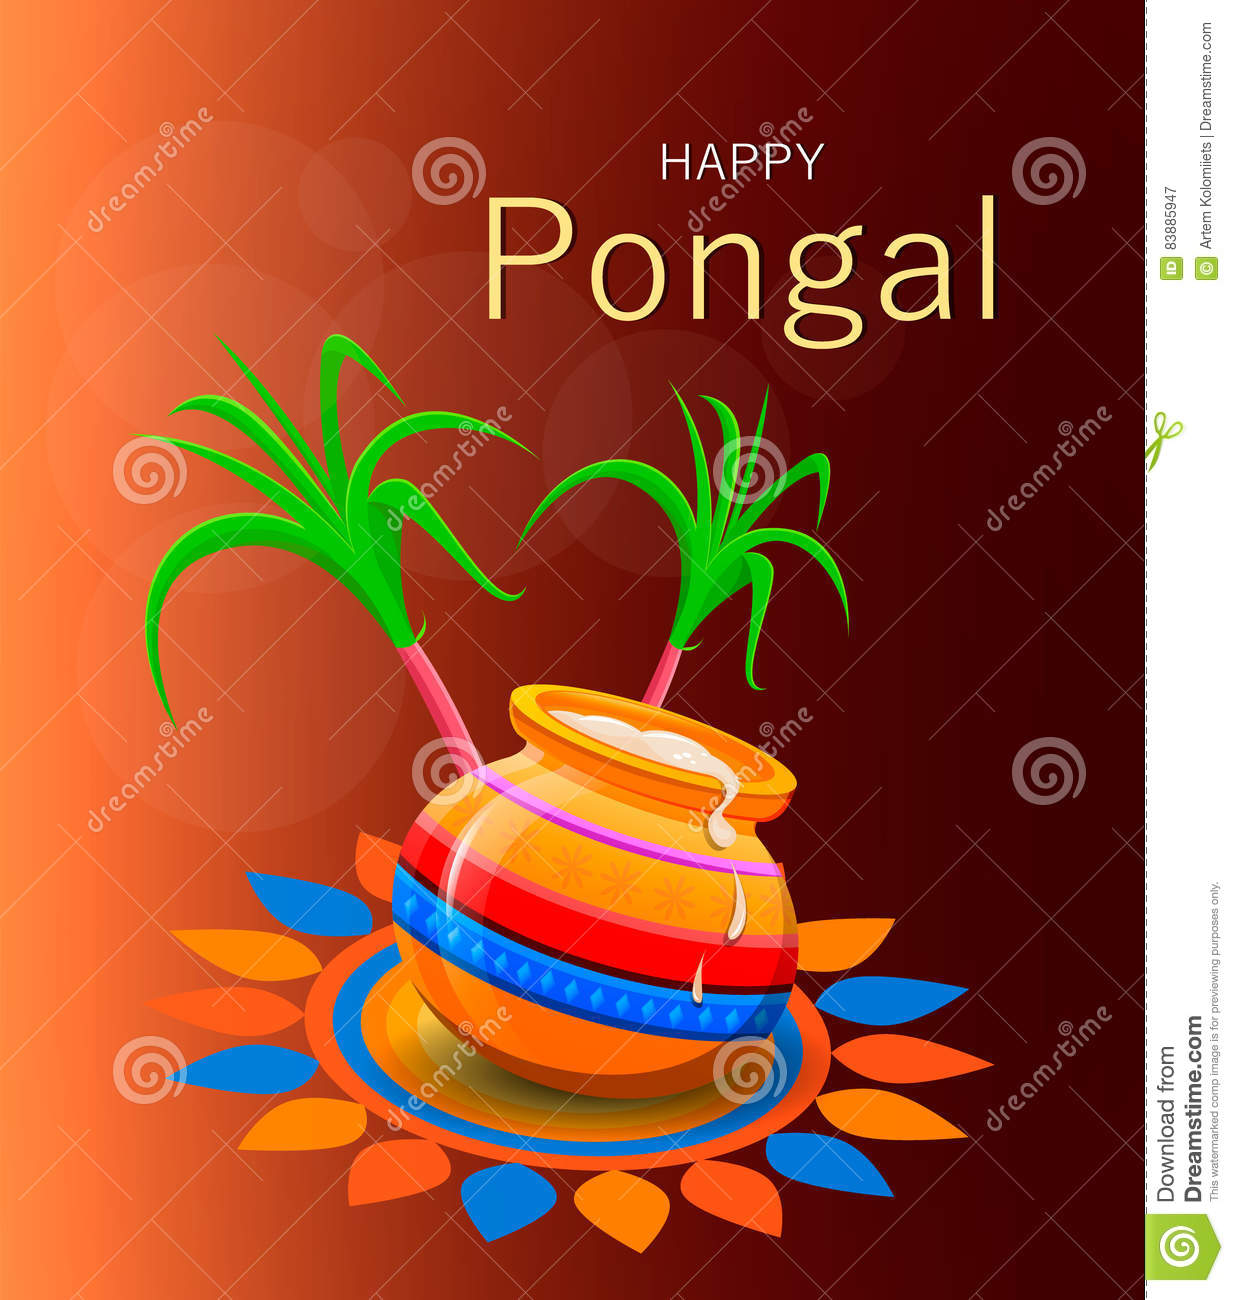 Happy pongal greeting card on brown background stock vector happy pongal greeting card on brown background m4hsunfo